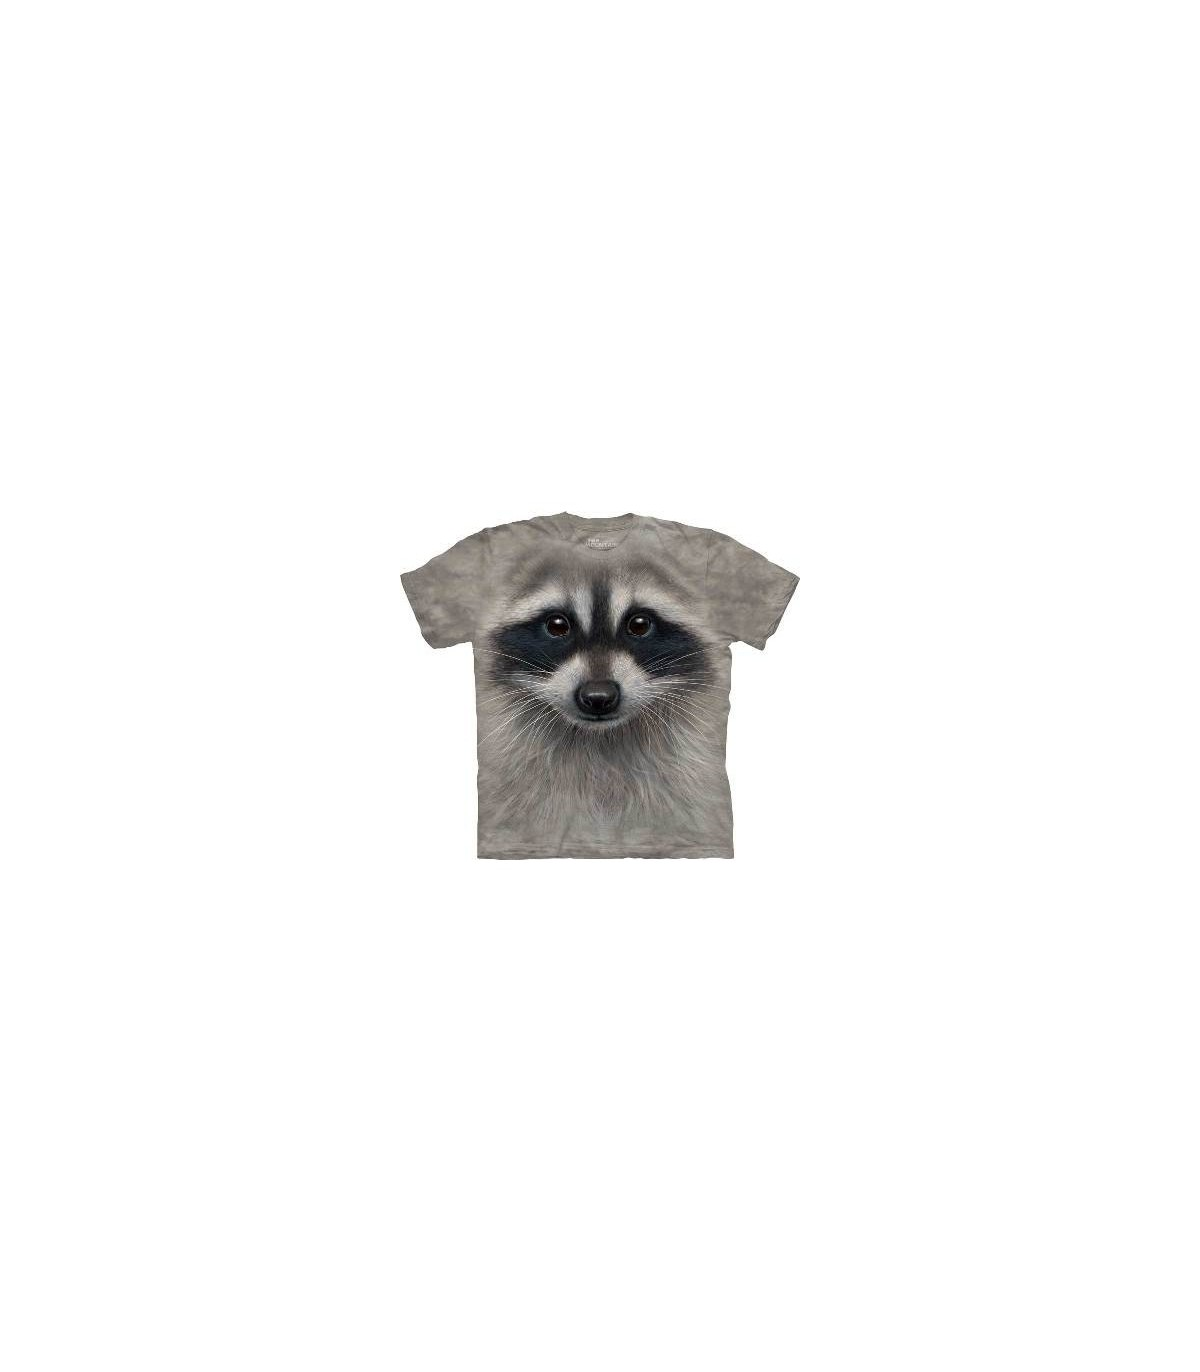 Raccoon Face - Animals T Shirt by the Mountain